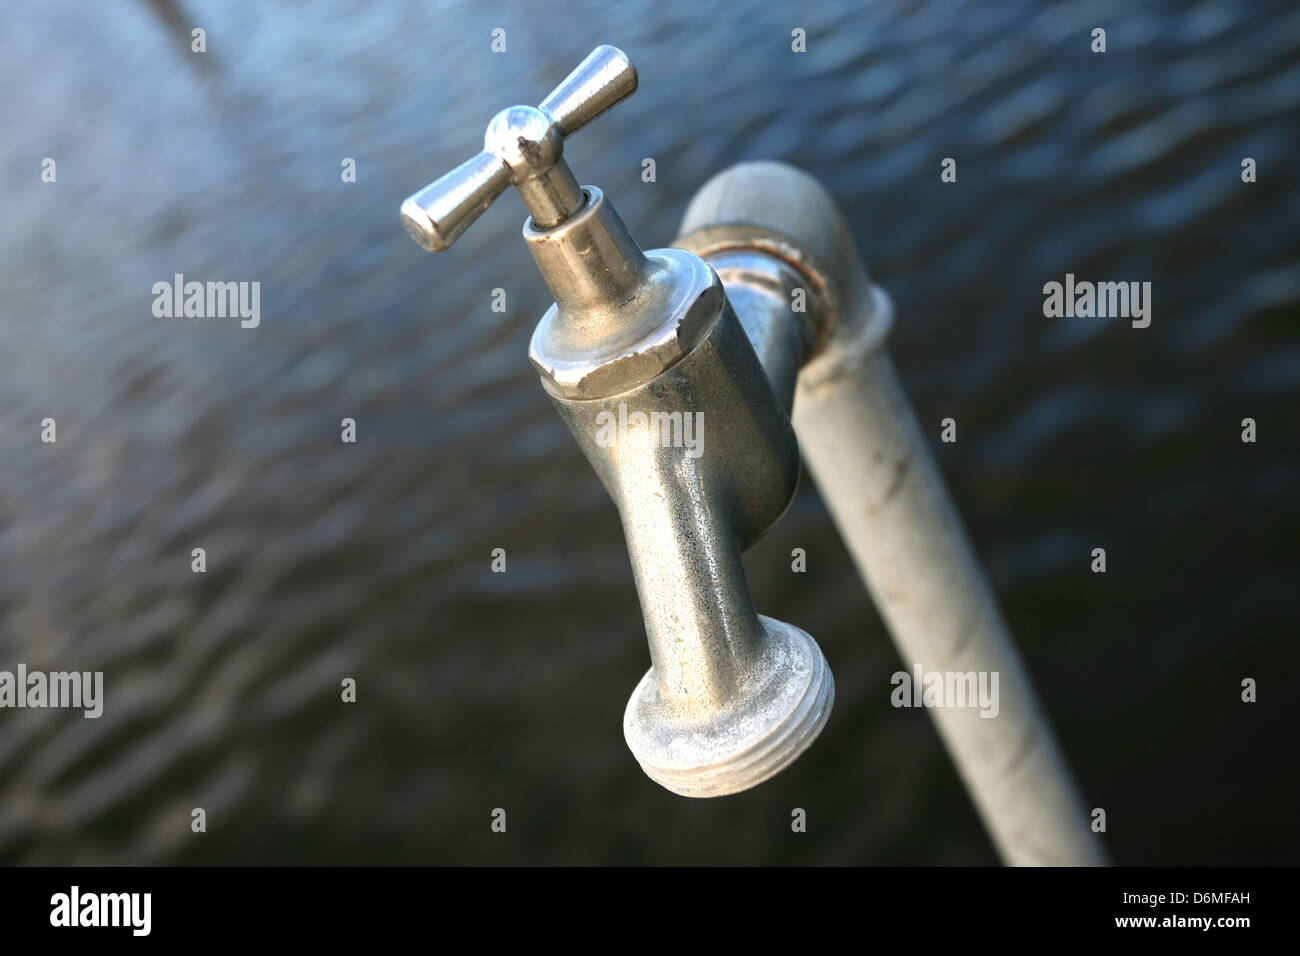 Water Faucet Stock Photos & Water Faucet Stock Images - Alamy